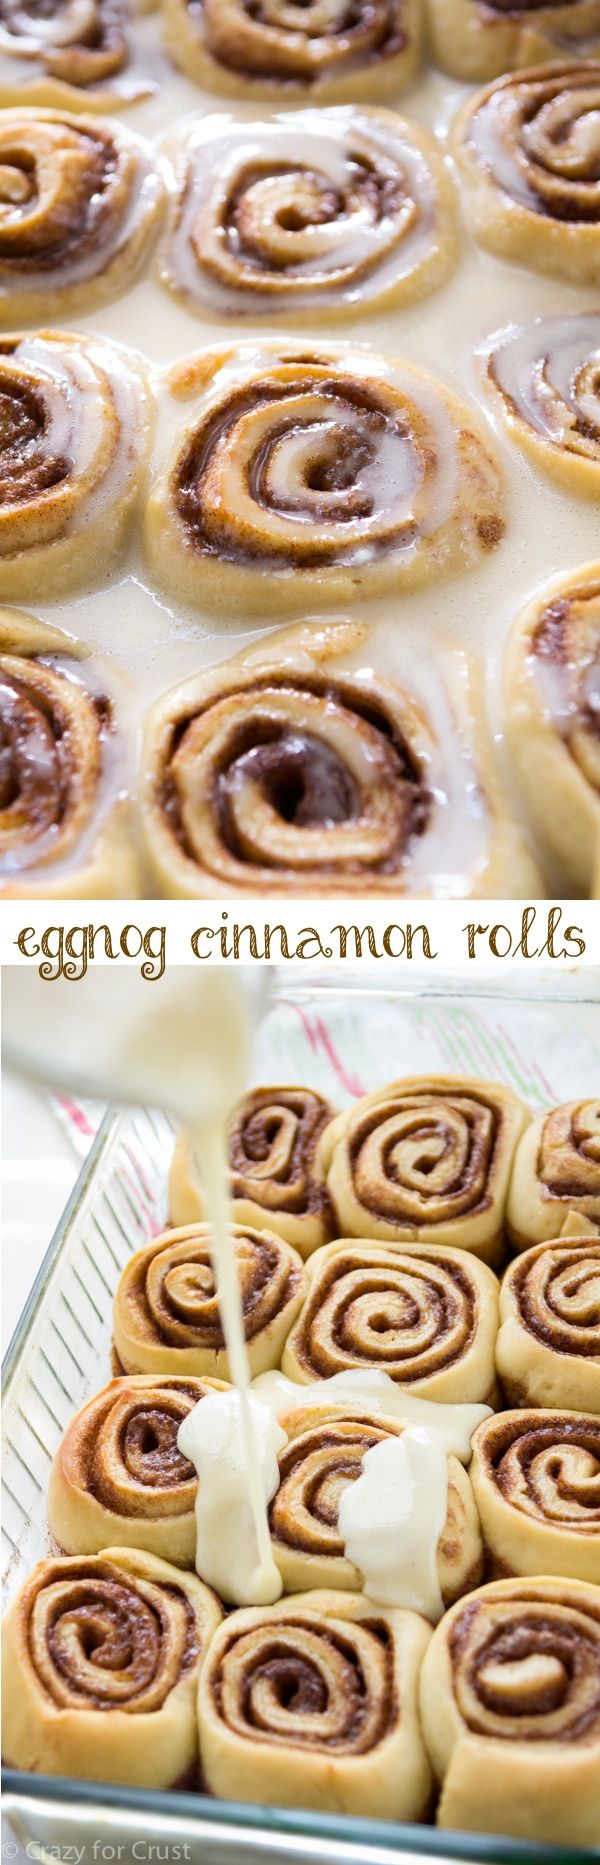 Eggnog Cinnamon Rolls made with eggnog in the dough and in the glaze! The perfect breakfast for Christmas morning.